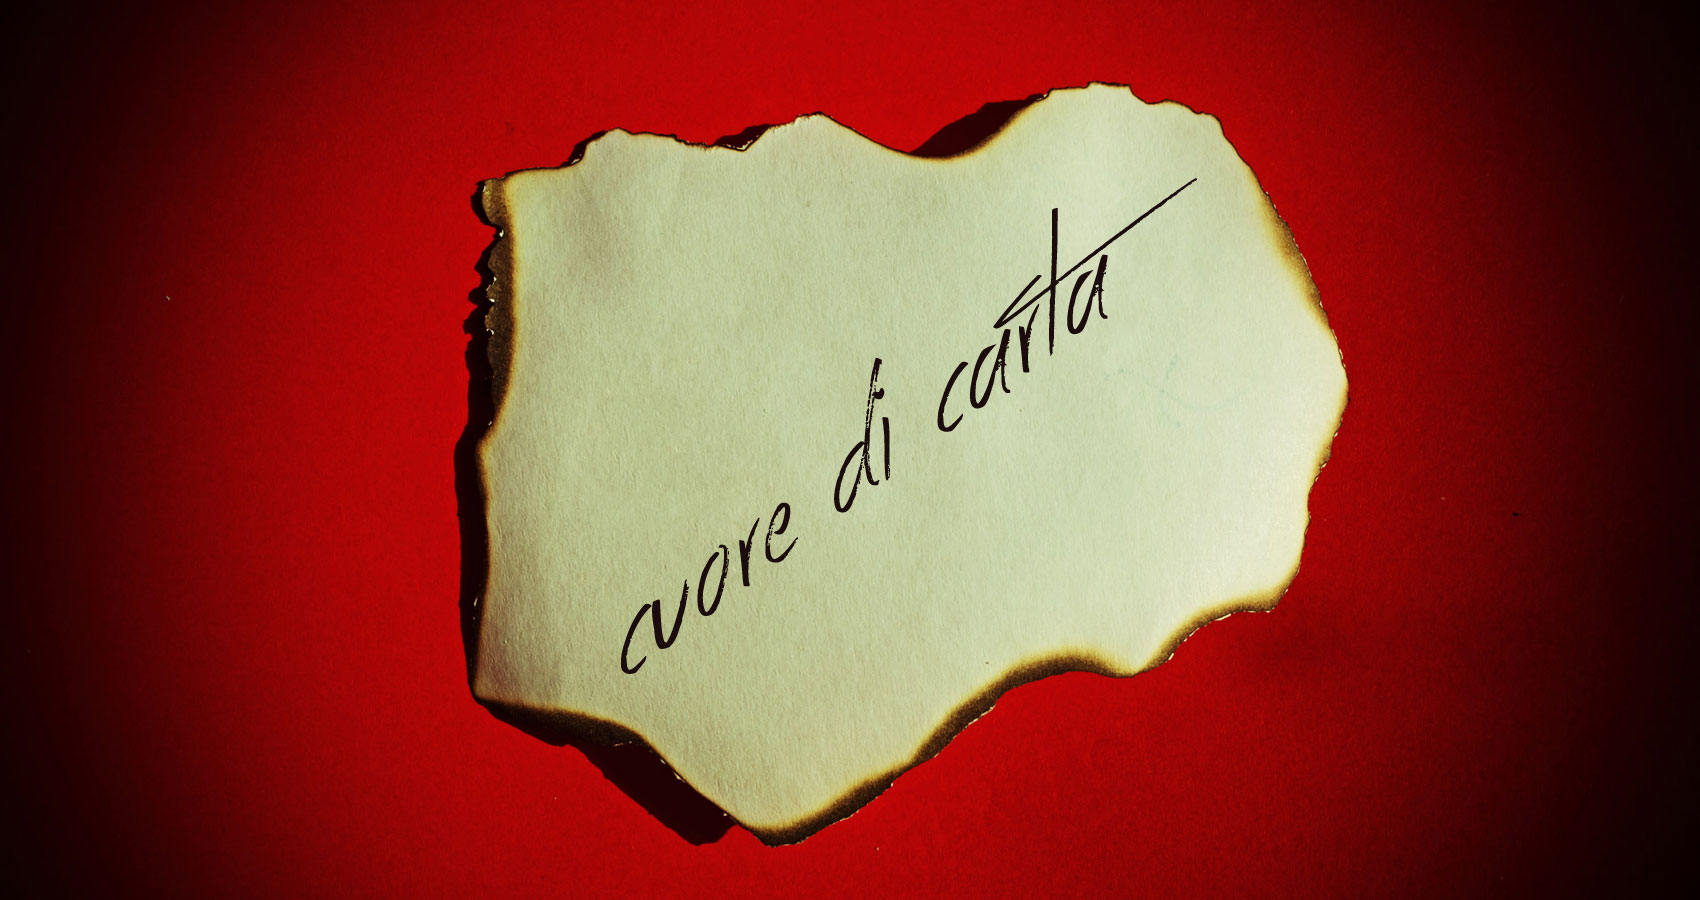 Cuore Di Carta written by Edward Mind at Spillwords.com